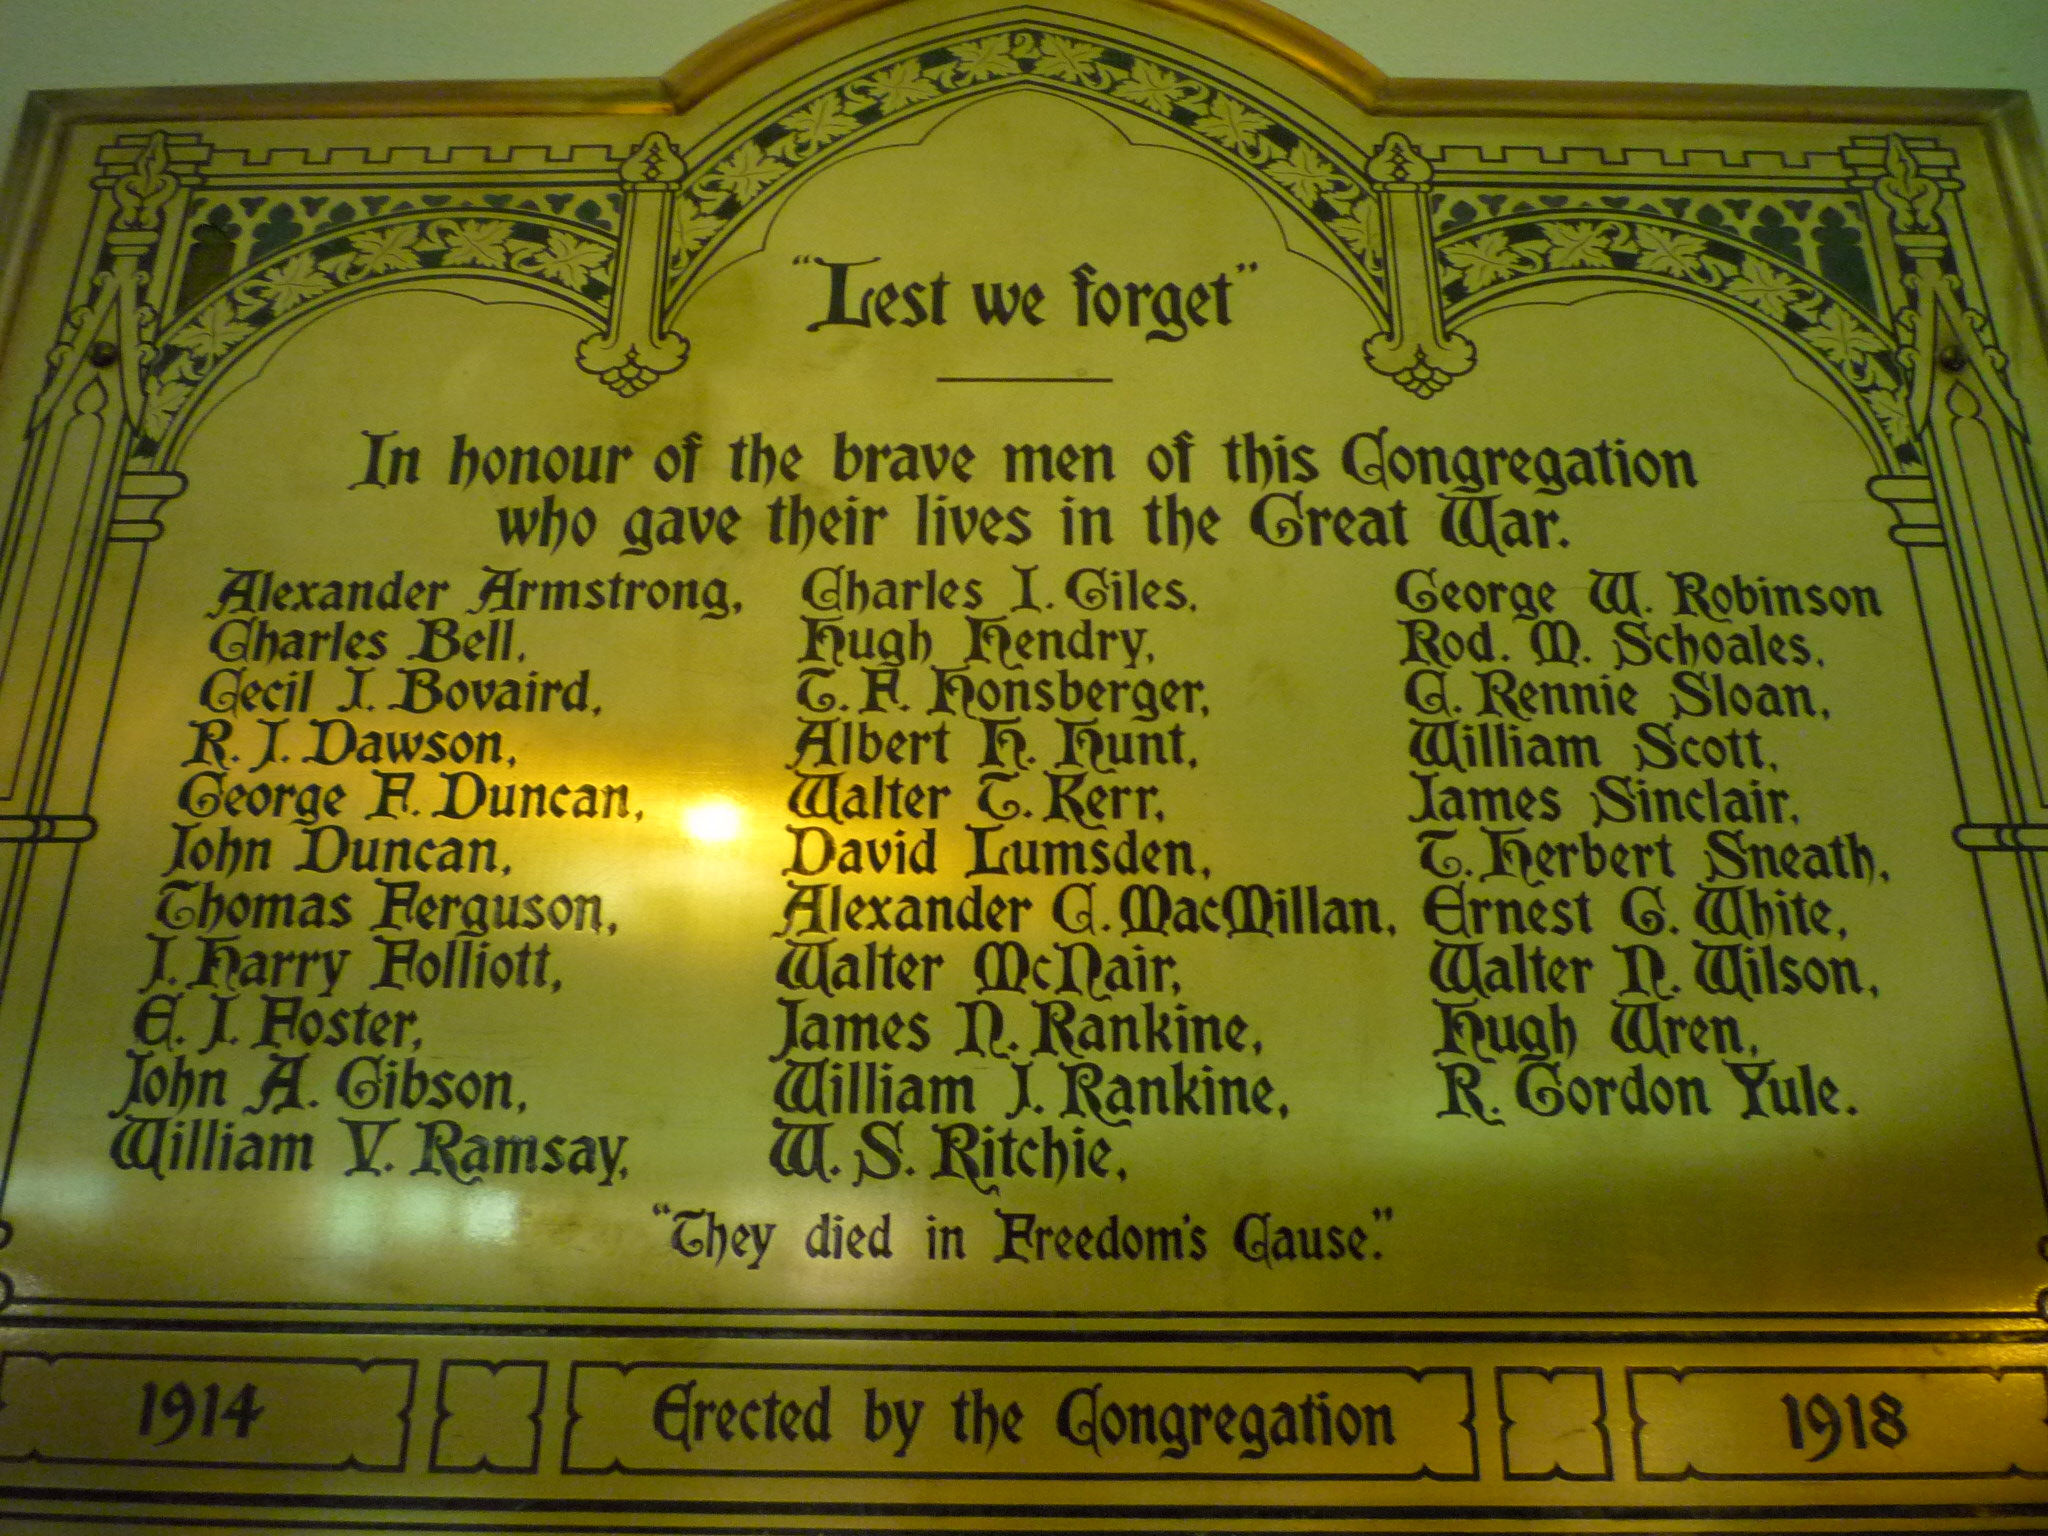 Memorial Plaque– Commemorative Plaque erected in the sanctuary of St. John's Presbyterian Church, Broadview Avenue, Toronto, Ontario, Canada.  Donor is Captain (Retired) Brian W. MacInnes, Director of Music, The 48th Highlanders of Canada, Military Band.